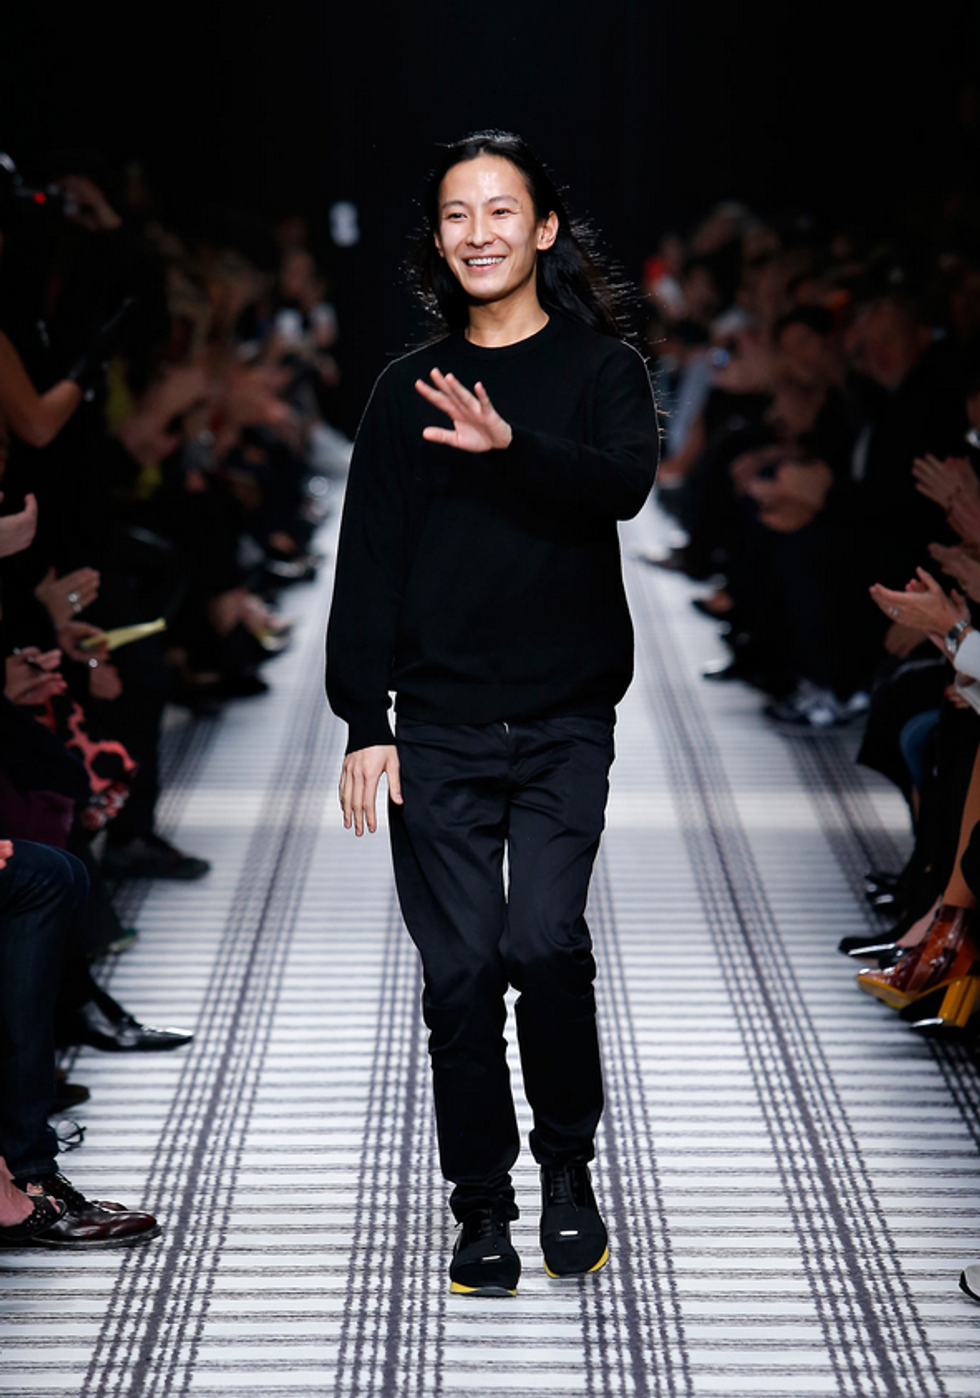 Alexander Wang Is Stepping Down As Creative Director of Balenciaga